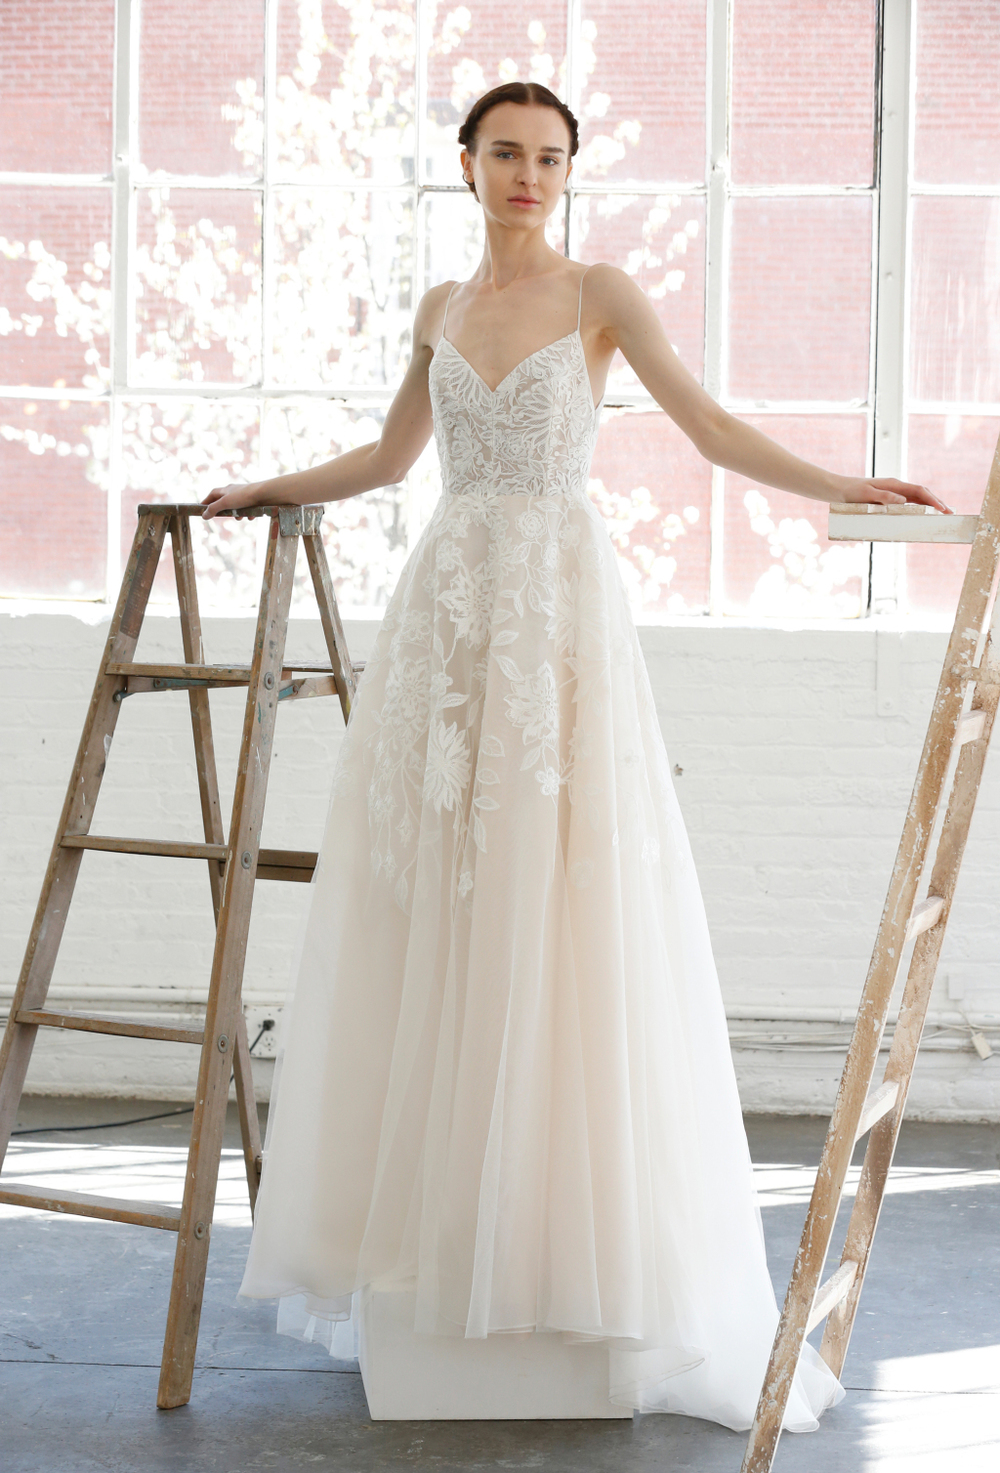 Lela Rose Bridal Gown.